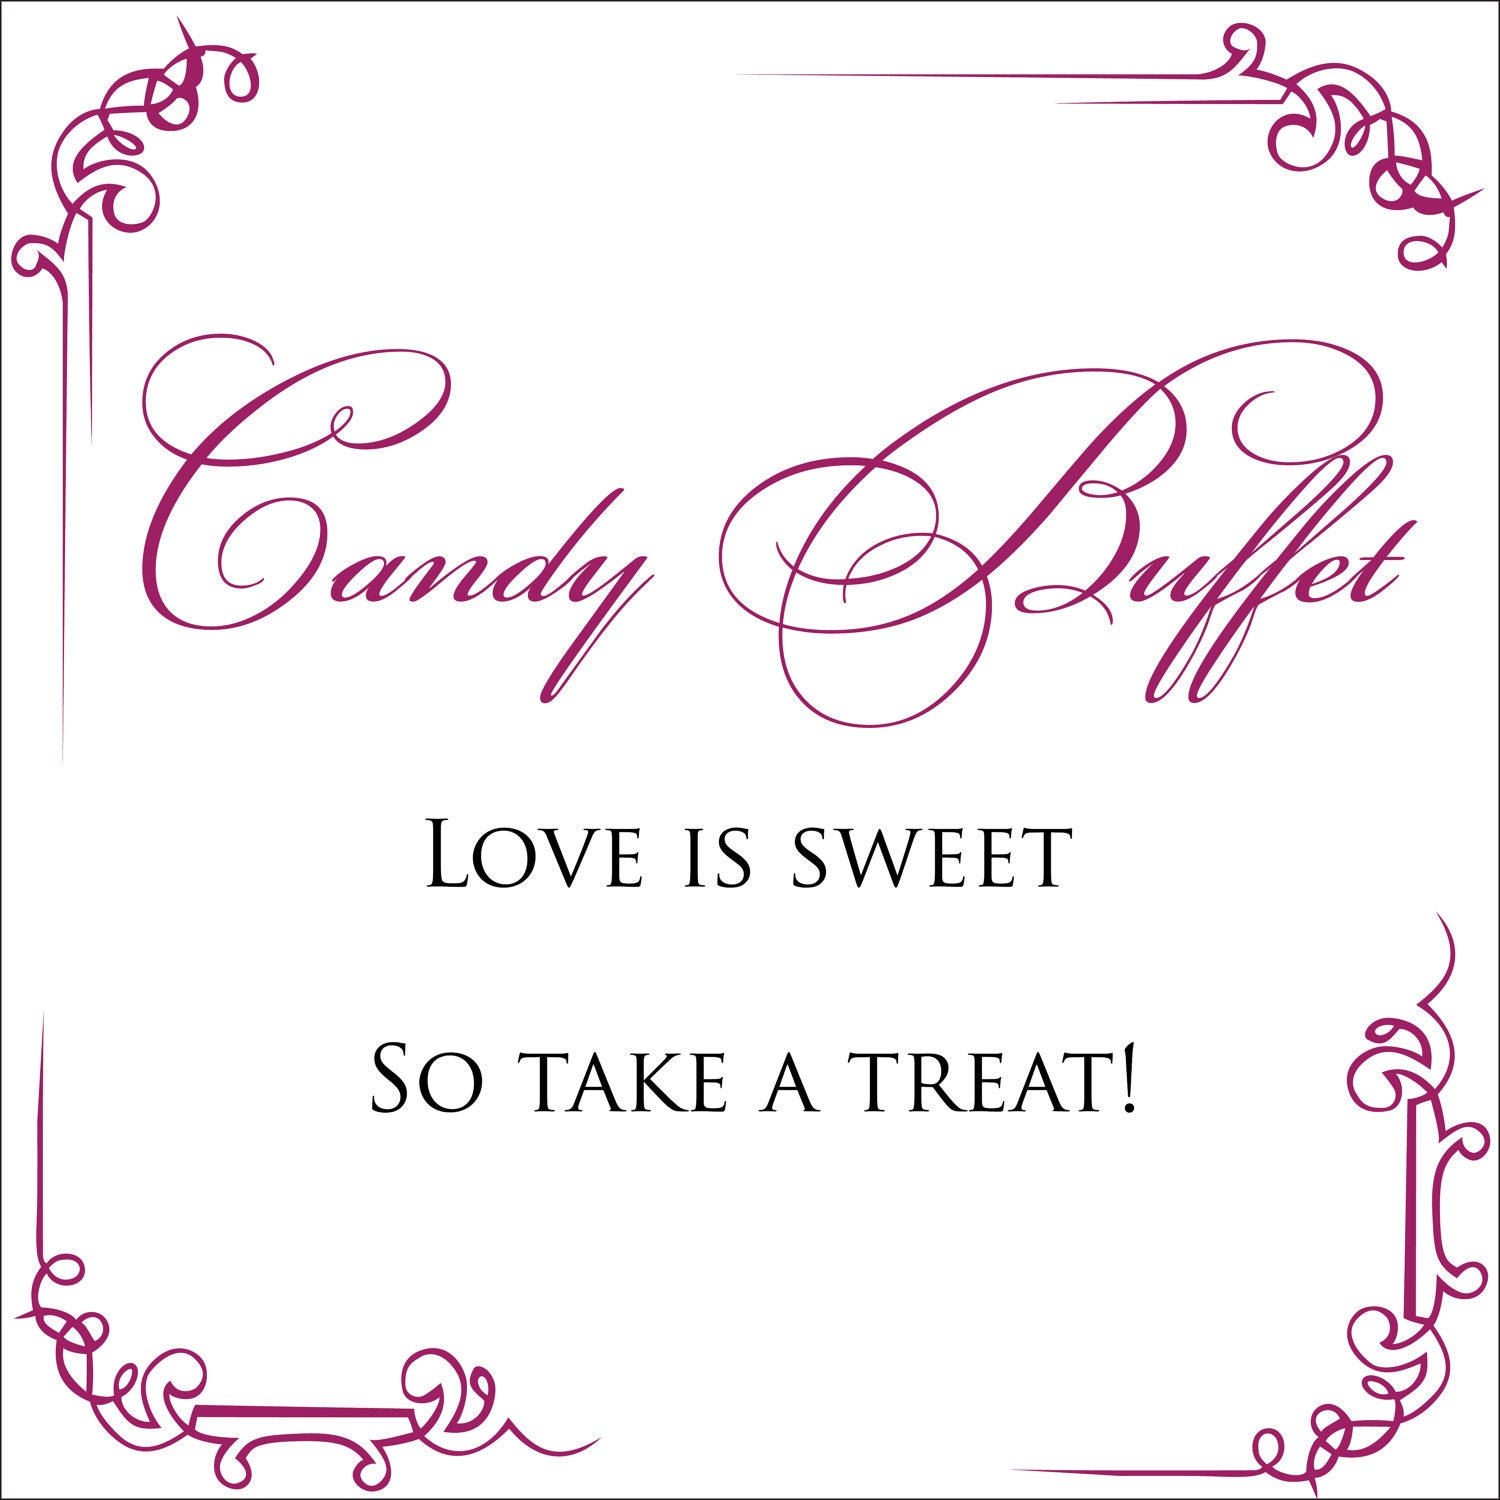 Simple wedding candy buffet sign digital file by weddingmonograms for Wedding signs templates